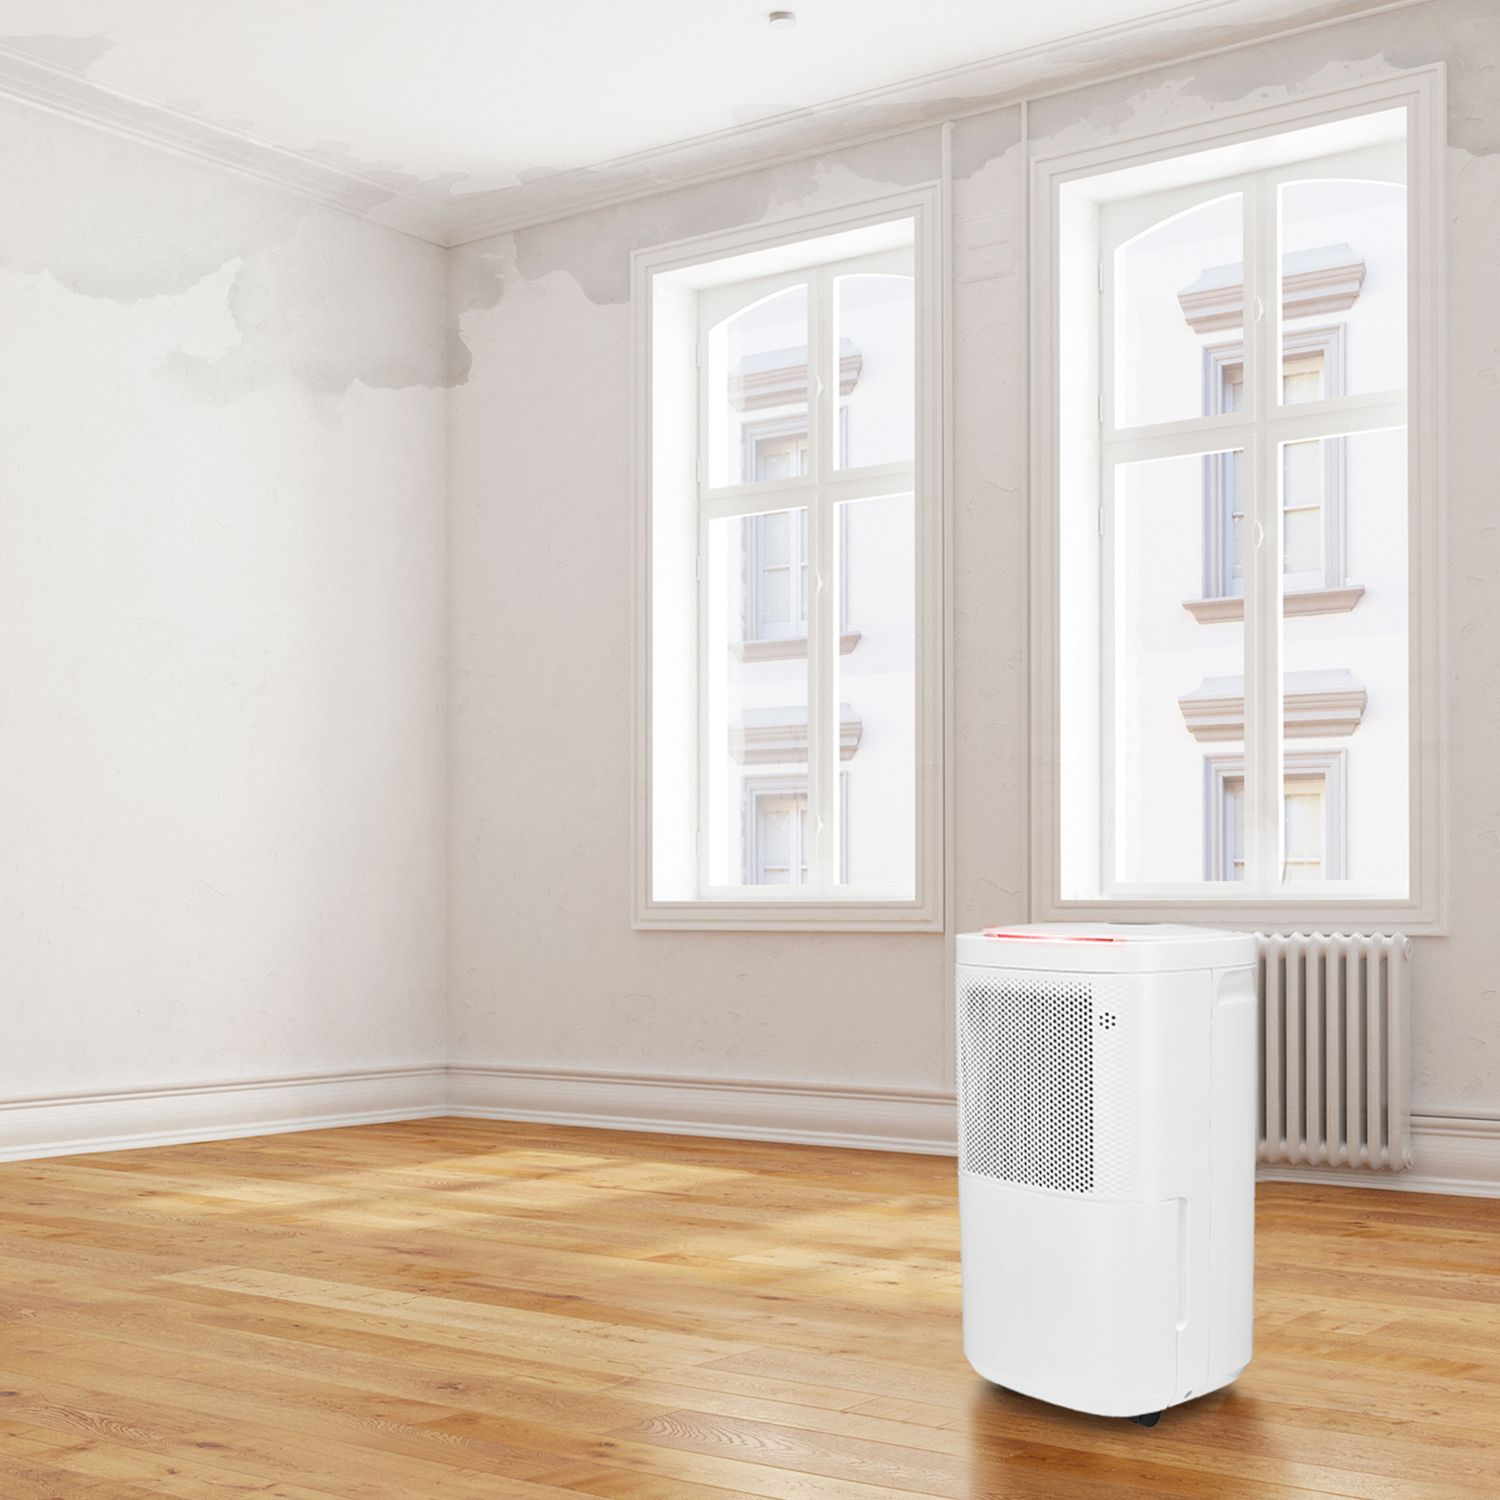 12L Dehumidifier For Large Damp Rooms Pro Breeze